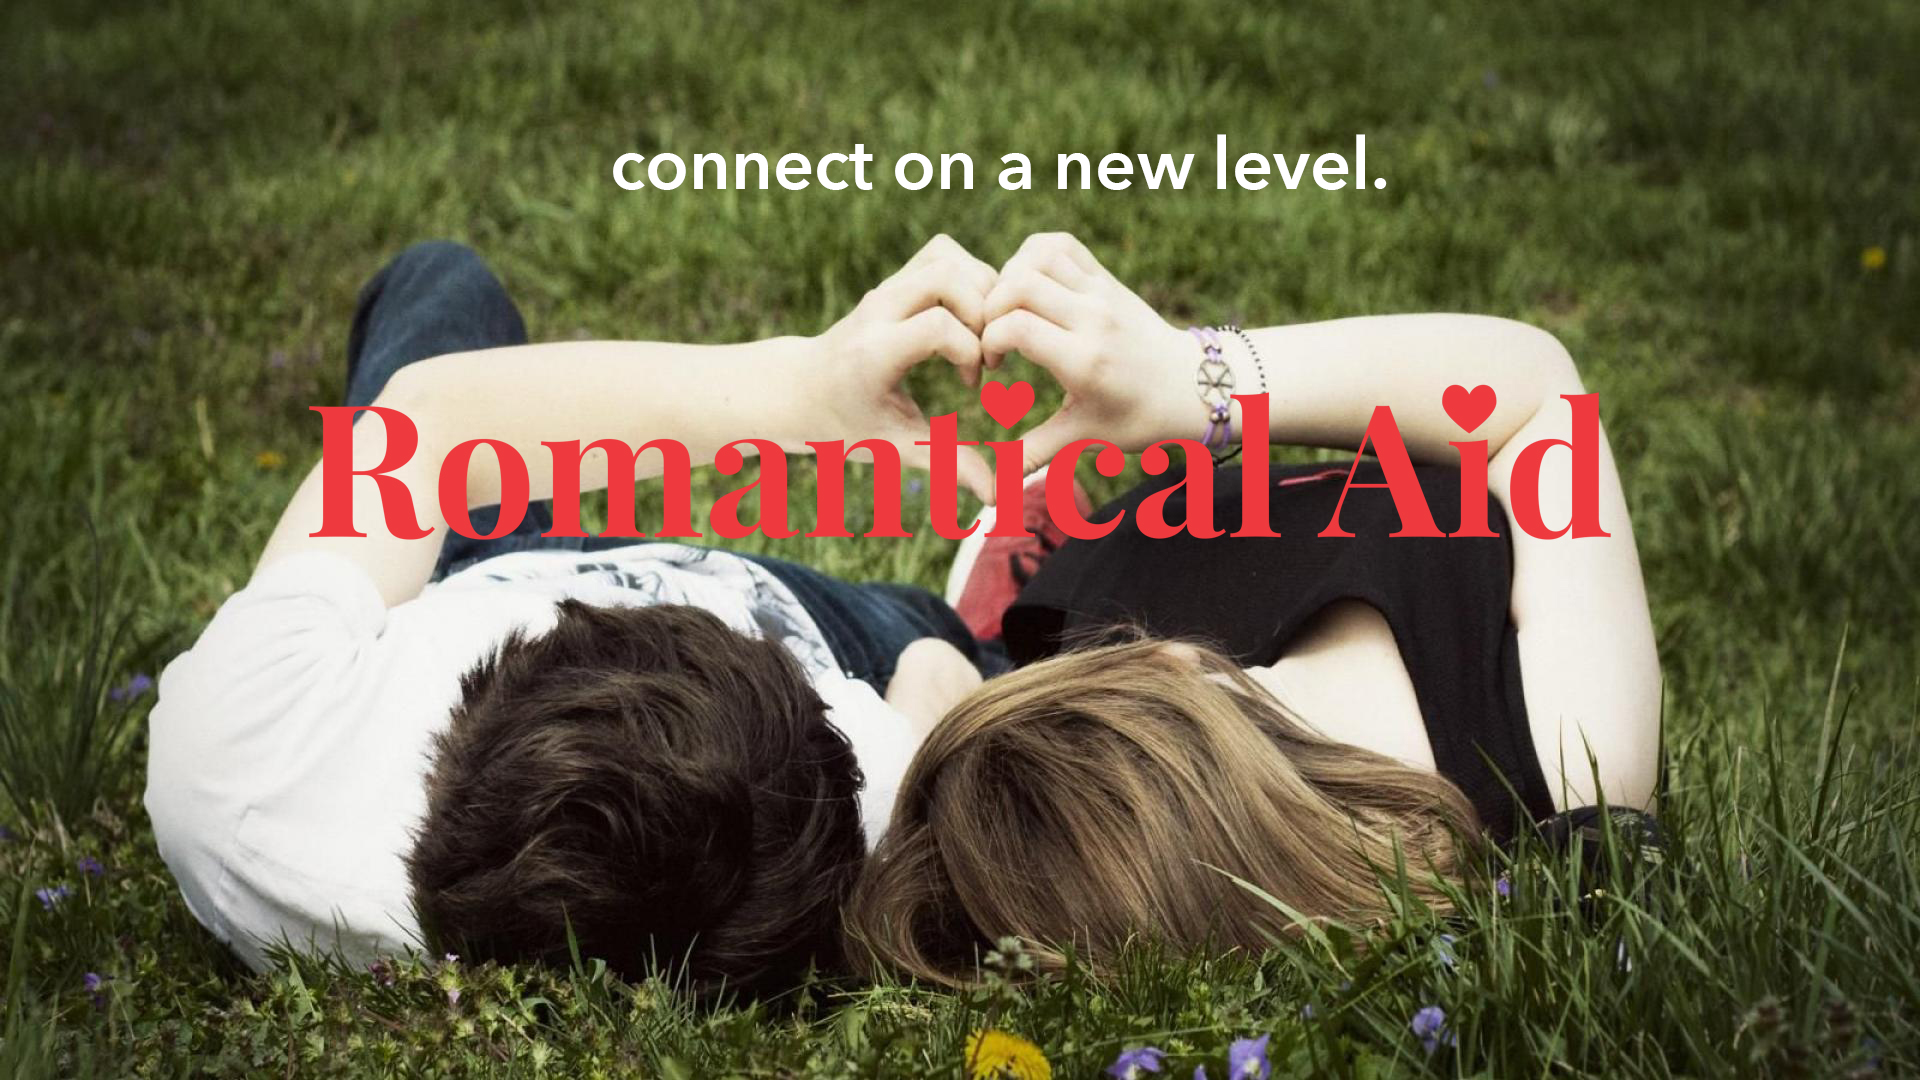 connect with your significant other